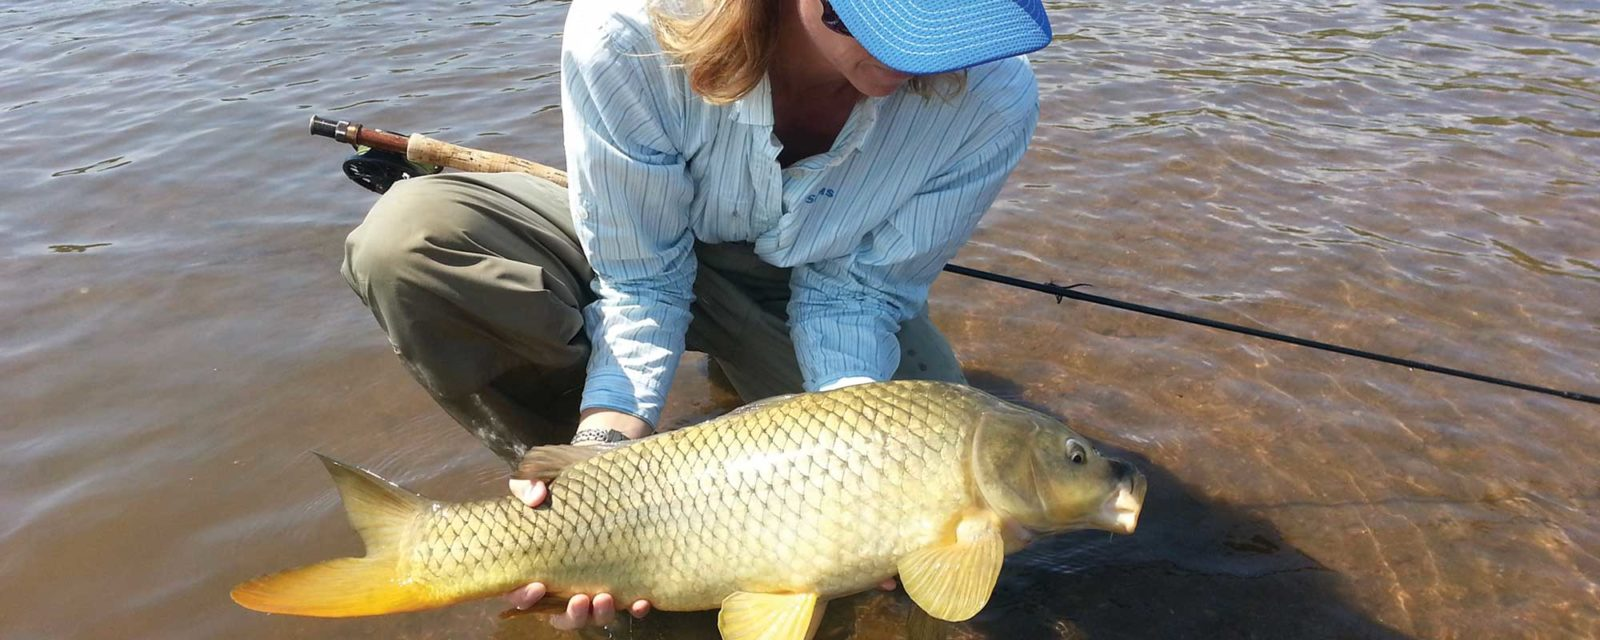 A woman holds and peers at a healthy looking common carp on the flats of a Colorado reservoir, with fly rod in lap.